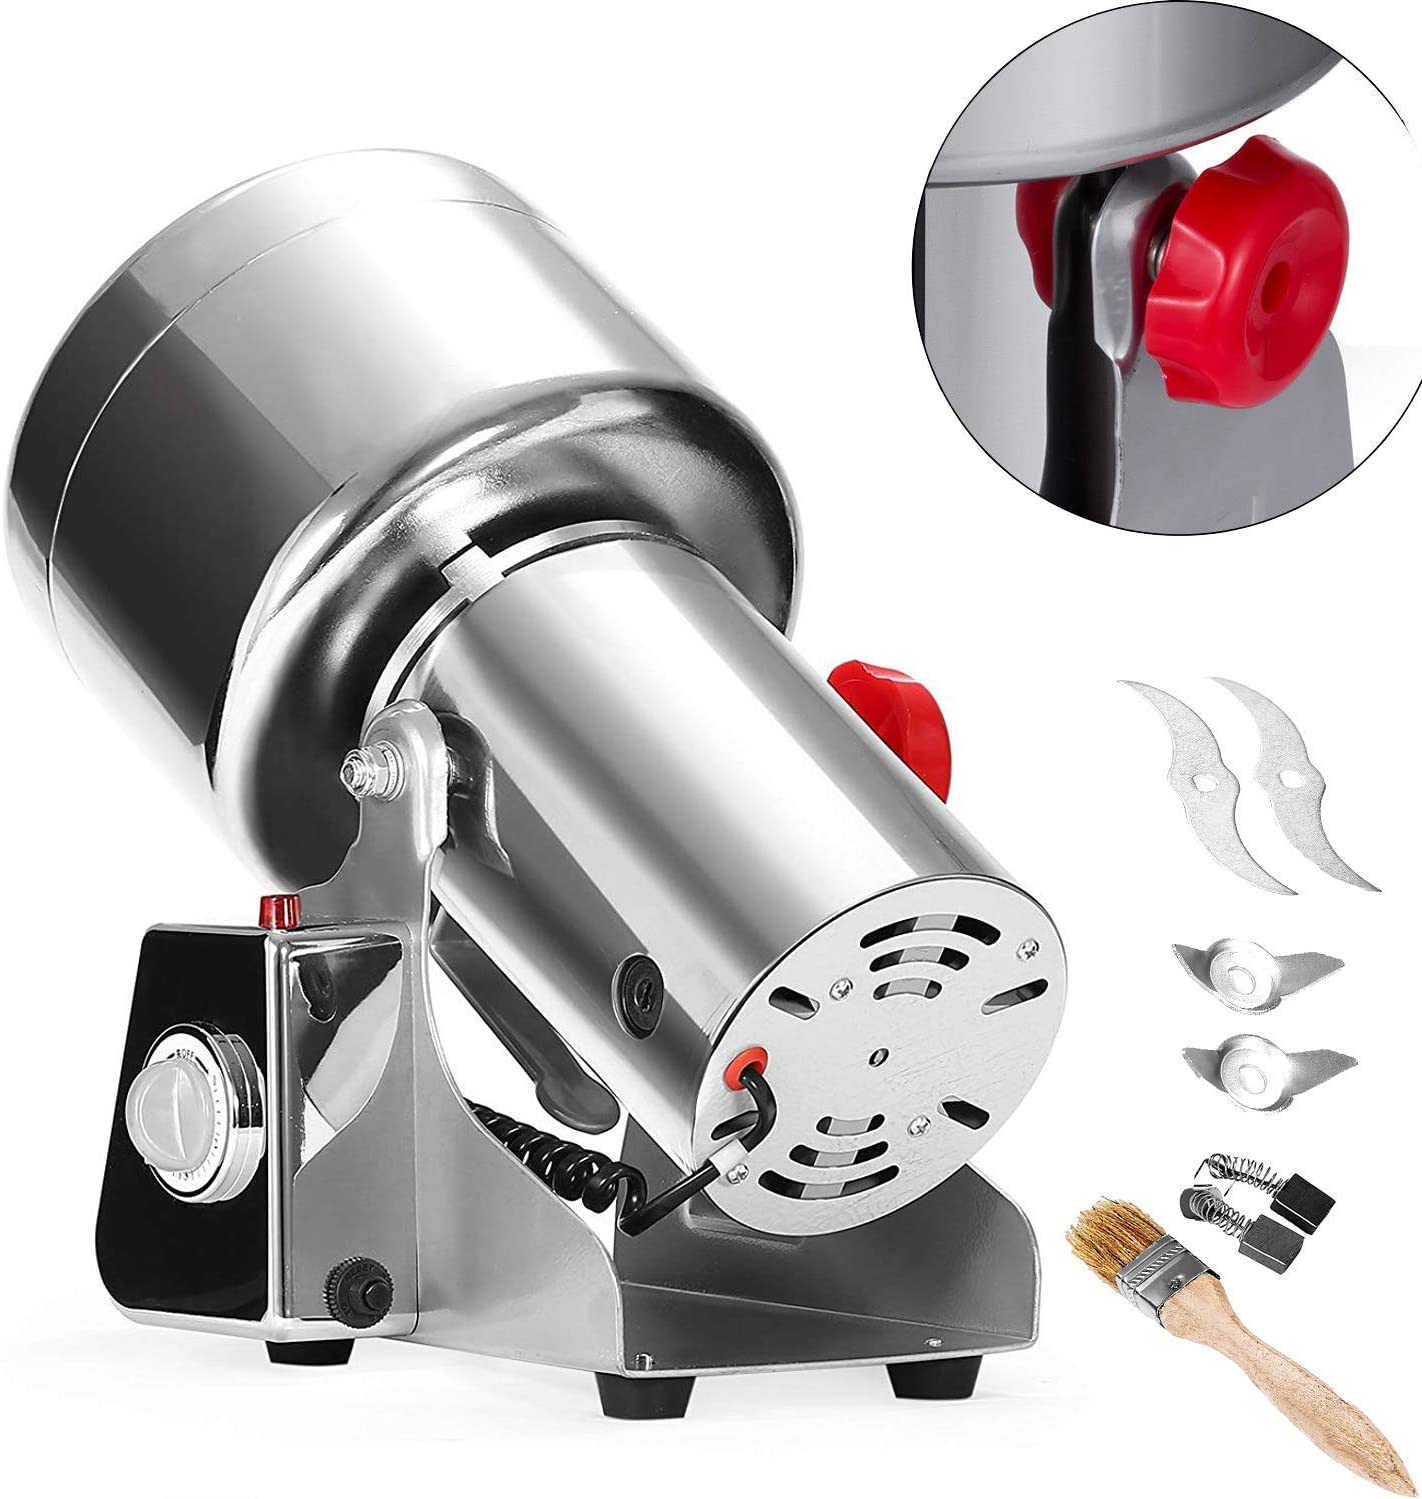 Happybuy Electric Grain Grinder 750g Pulverizer Grinding Machine 2500W Mill Grinder Powder Machine 50-300 Mesh Stainless Steel Swing Type Grain Grinder Mill for Kitchen Herb Spice Pepper Coffee